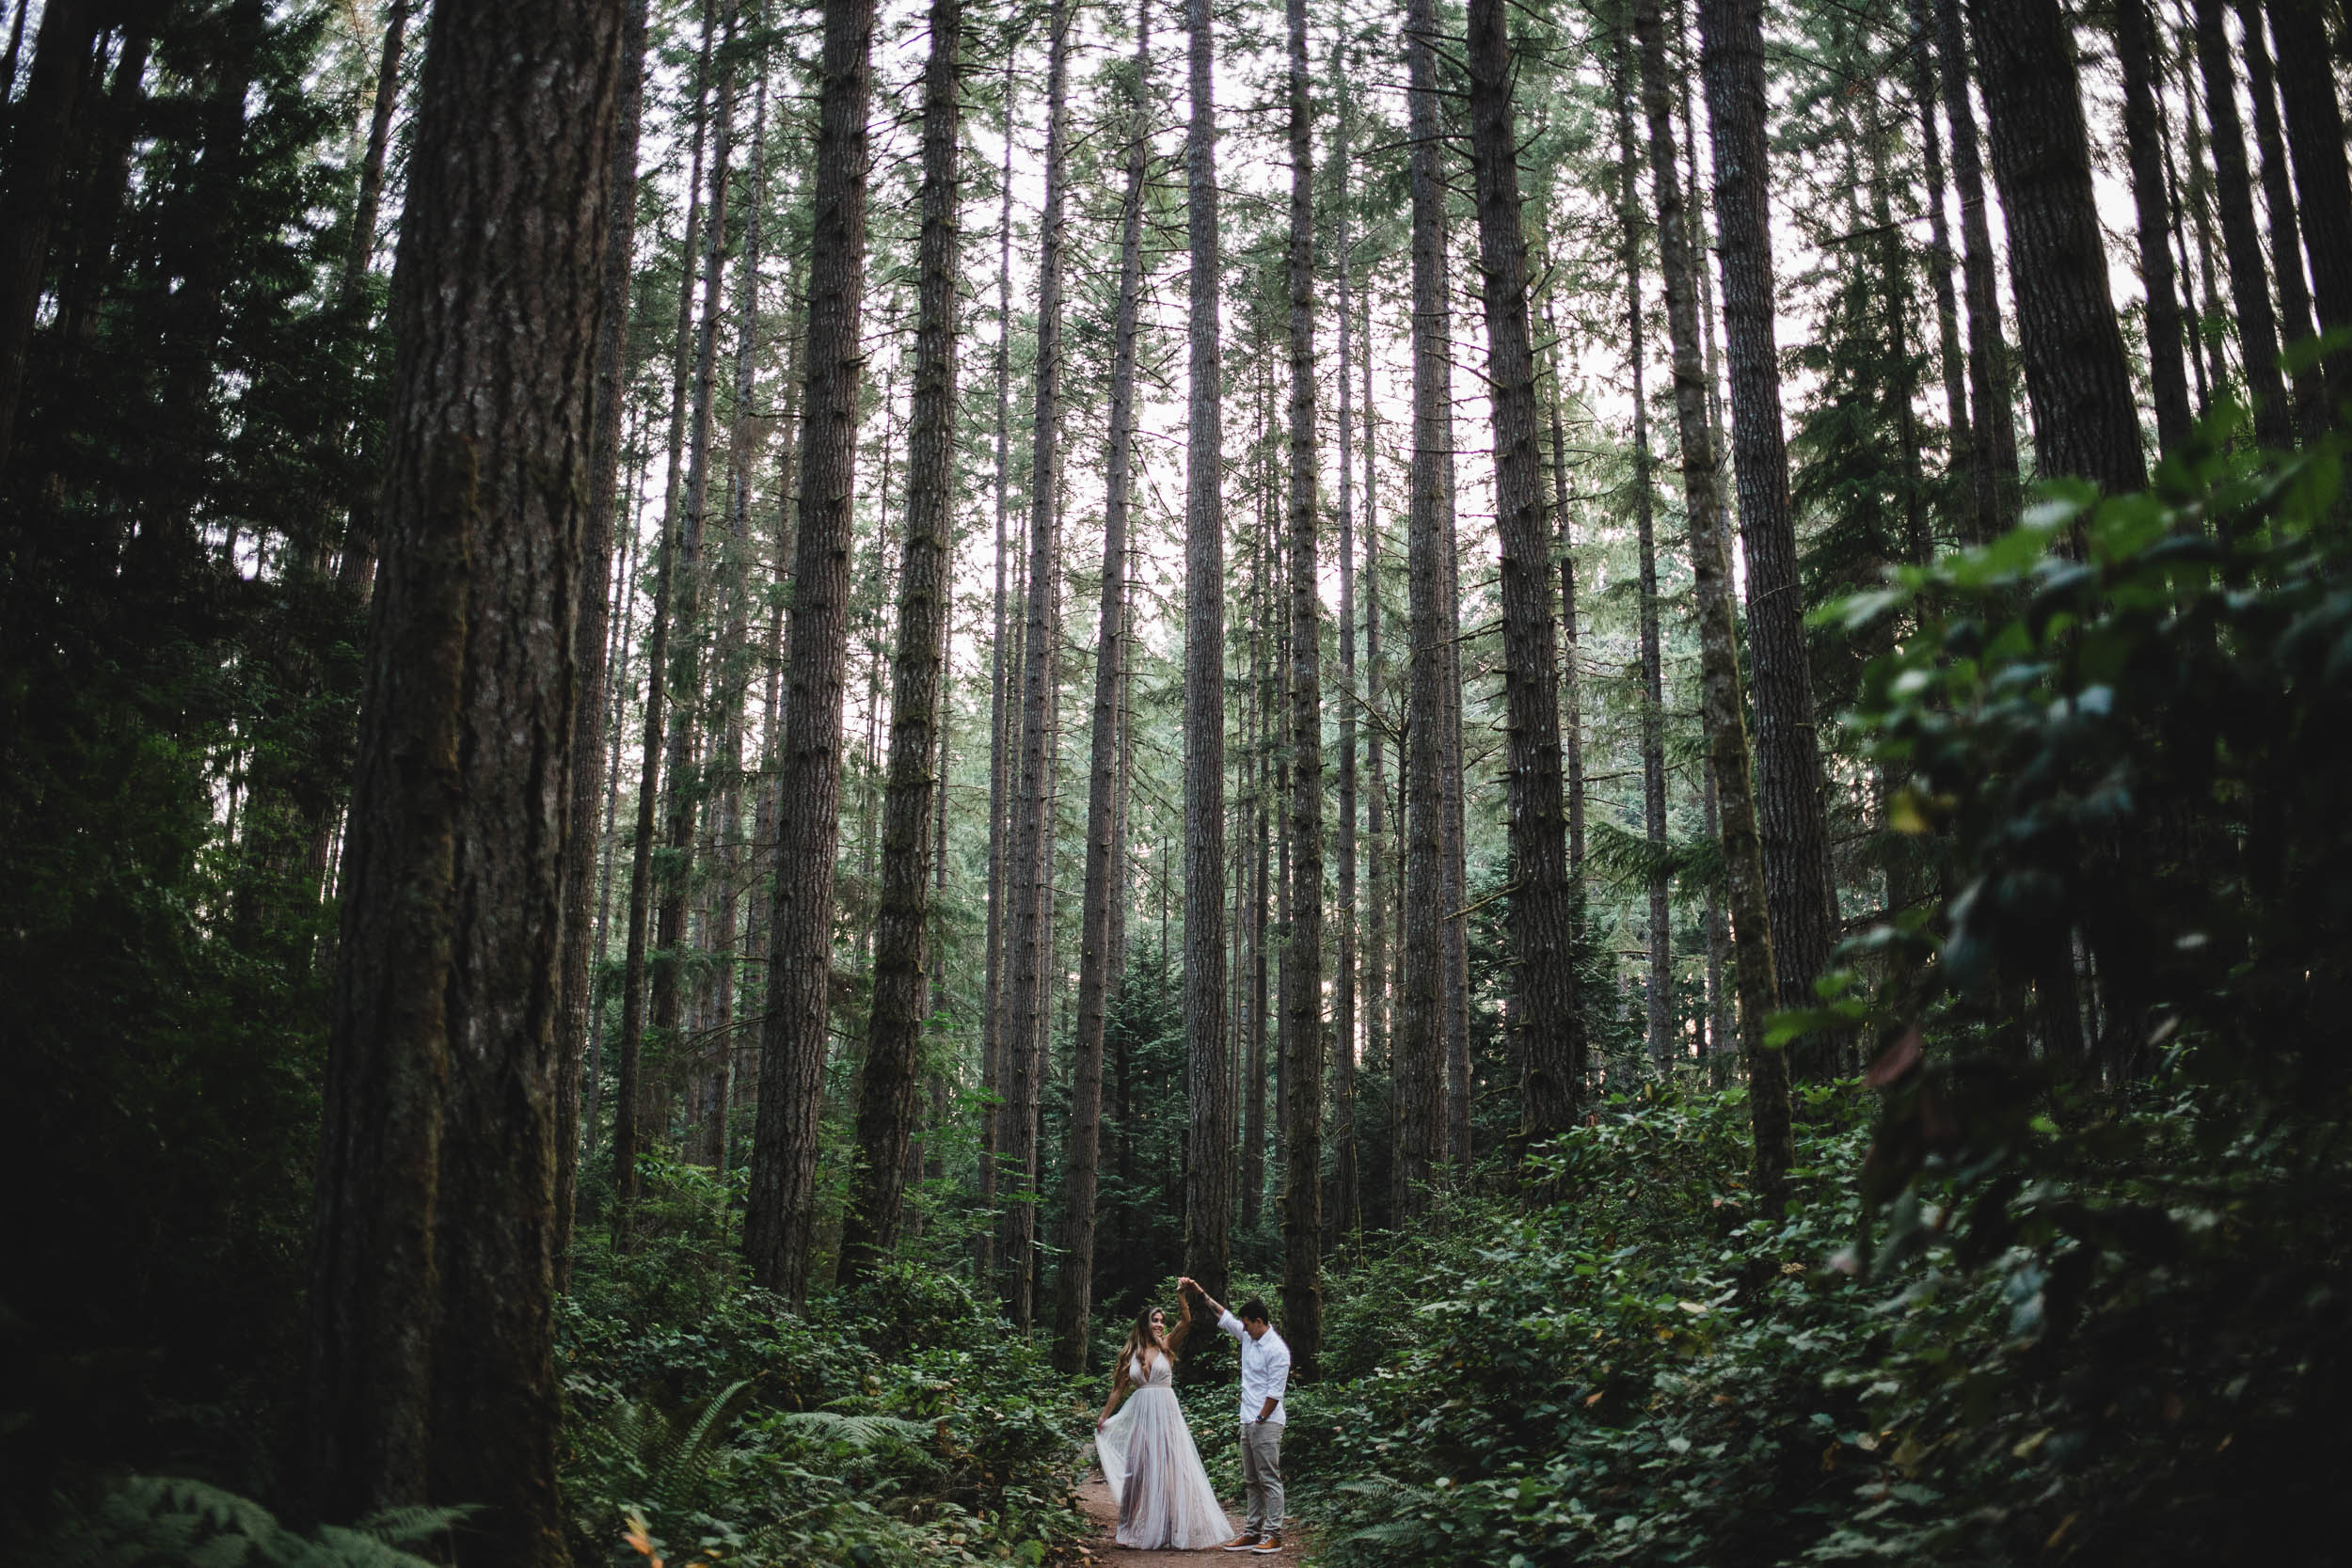 Bainbridge-Island-Elopement-KyleLovesTori-49.jpg